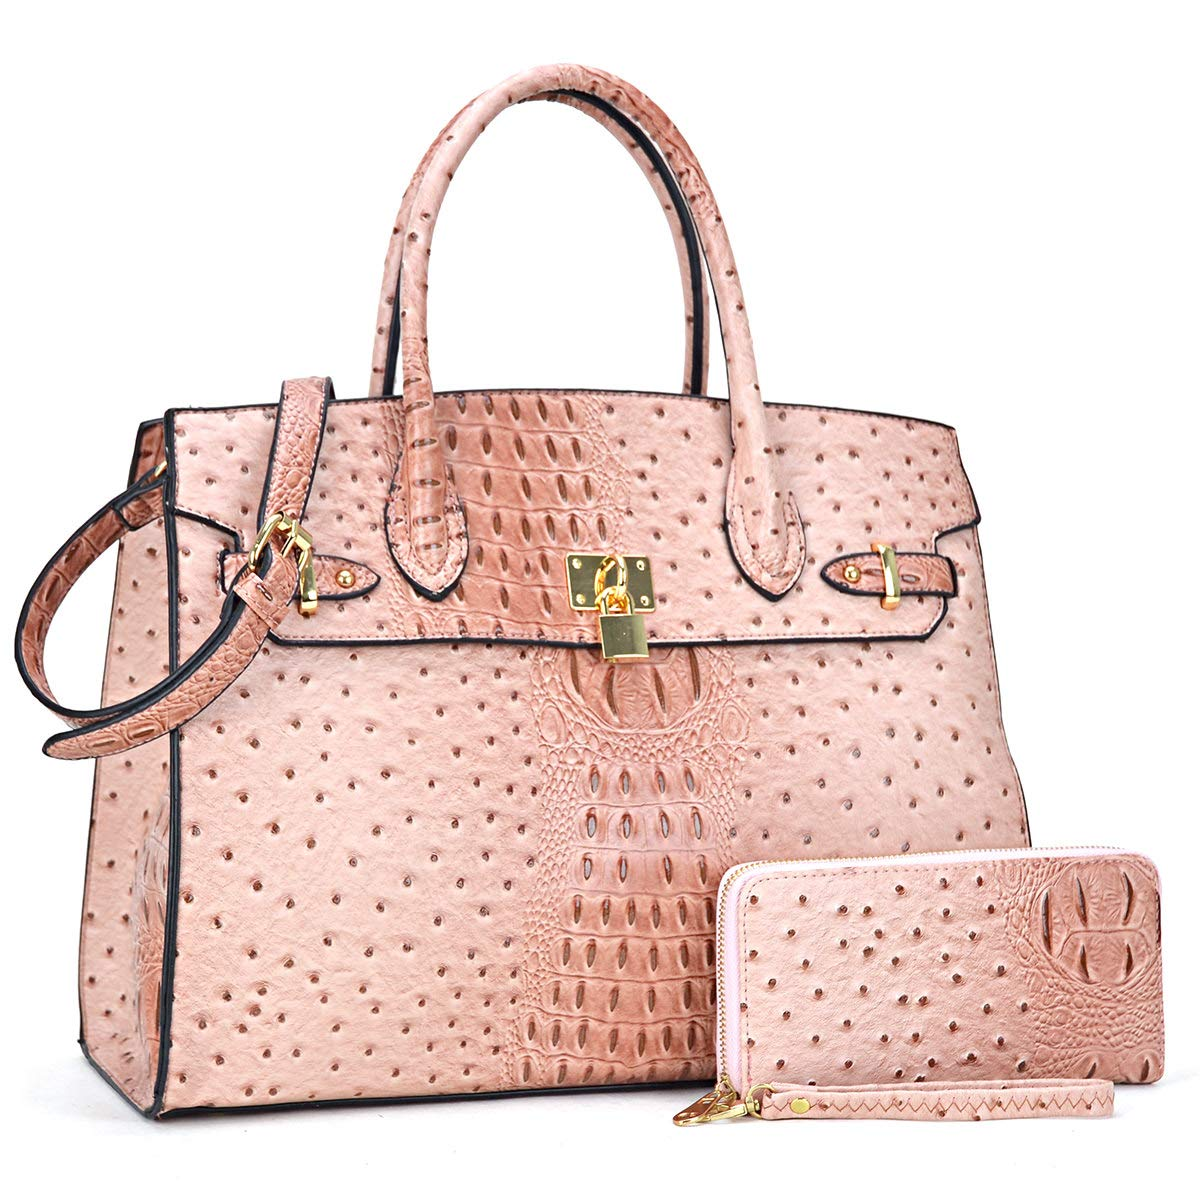 Women Top Handle Satchel Purse Large Handbag 2 Piece Wallet Set with Shoulder Strap Pink